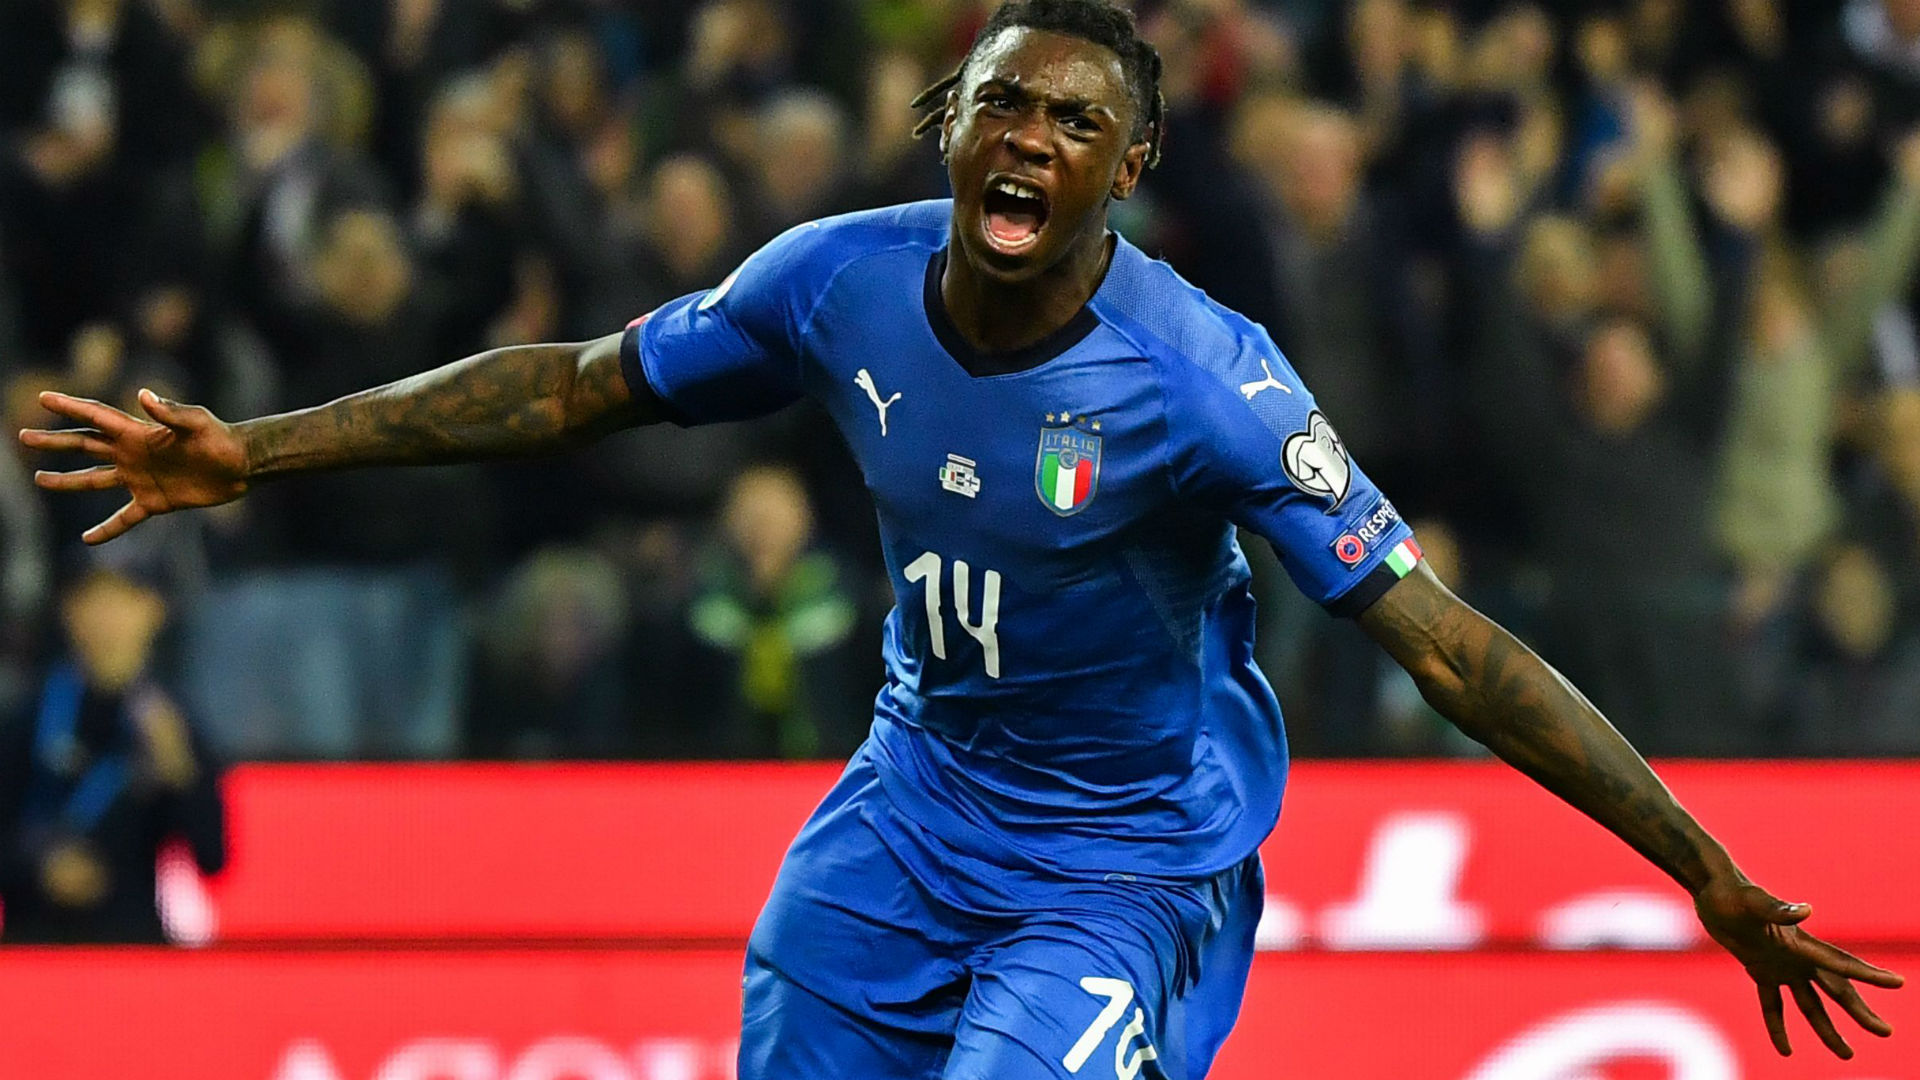 Juventus News Moise Kean Becomes Second Youngest Goalscorer In Italy History In Win Over Finland Goal Com